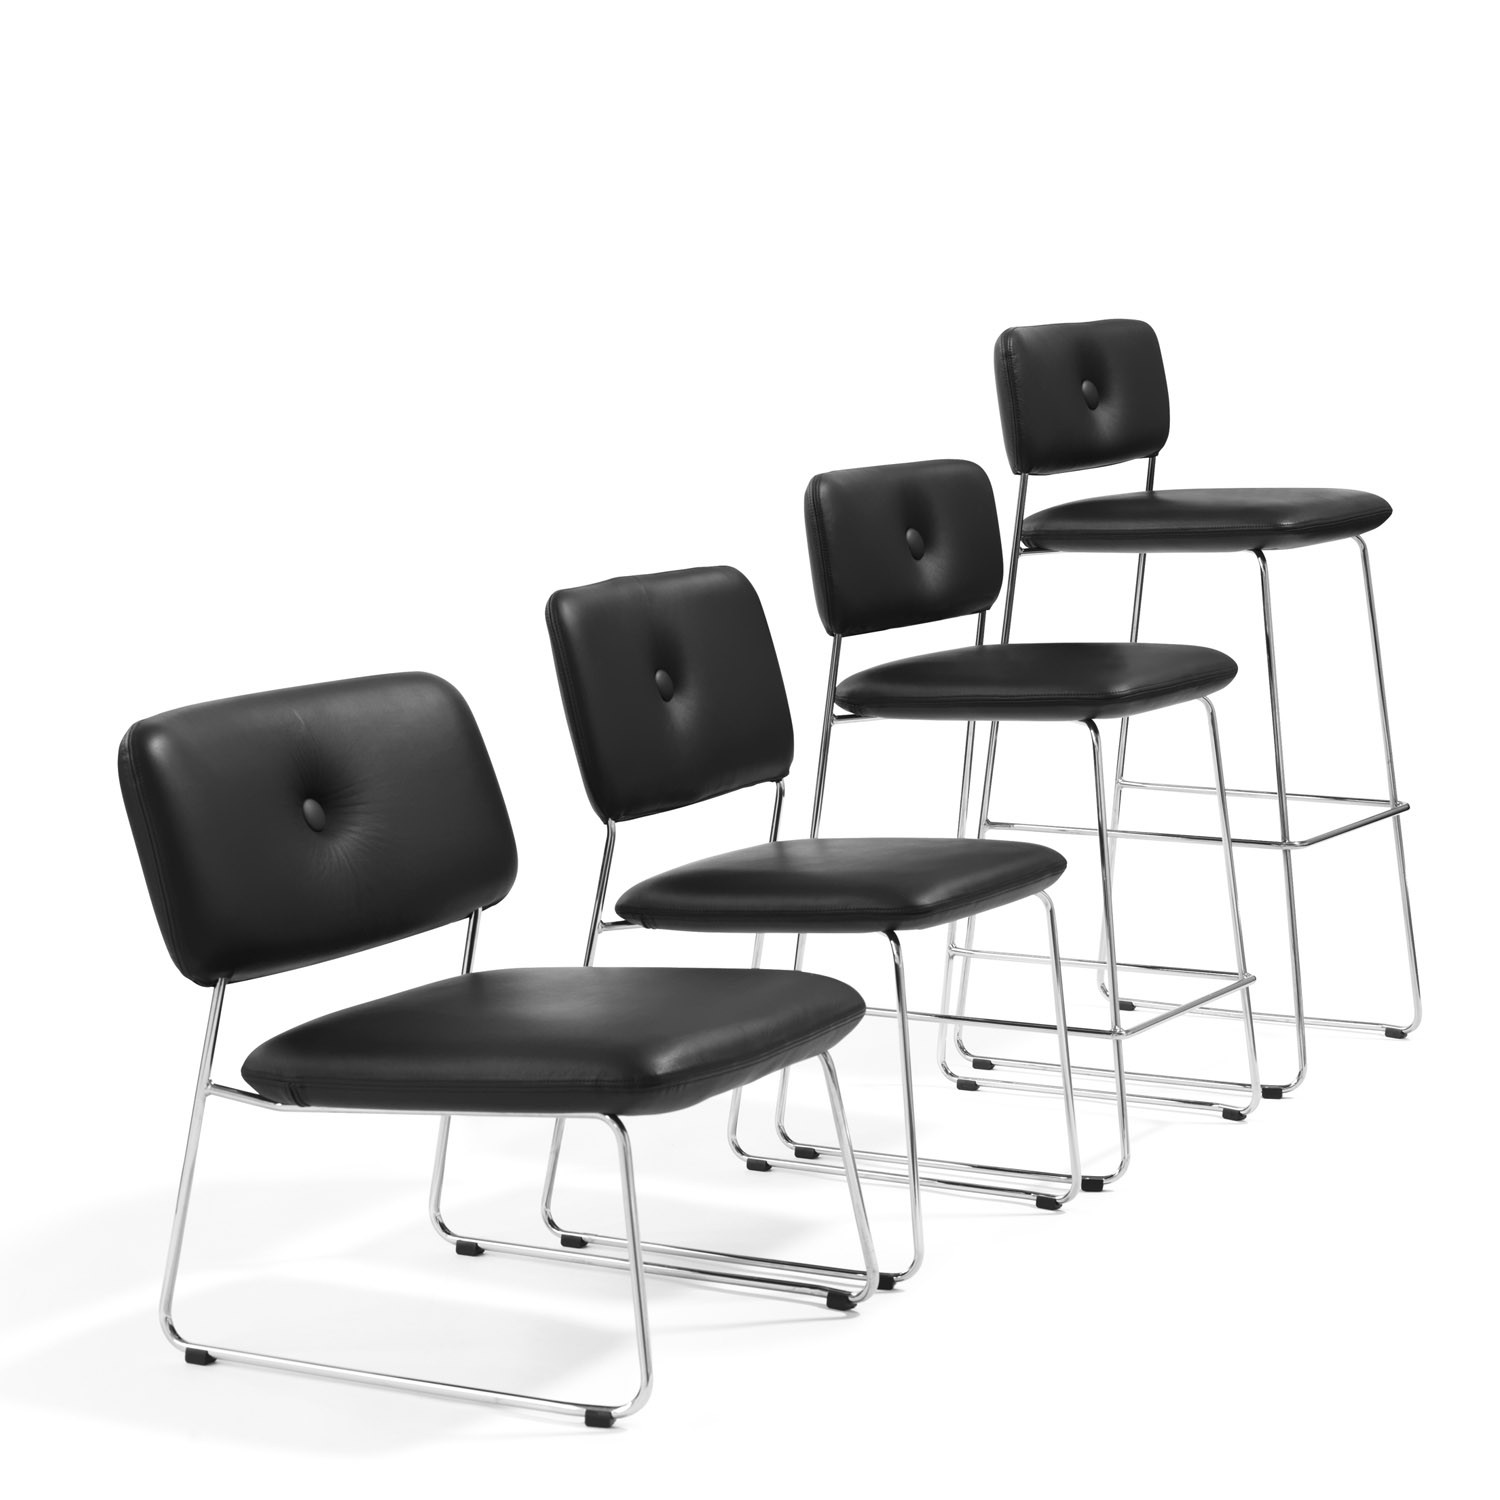 Dundra S70 Chair Range including Bar Stool